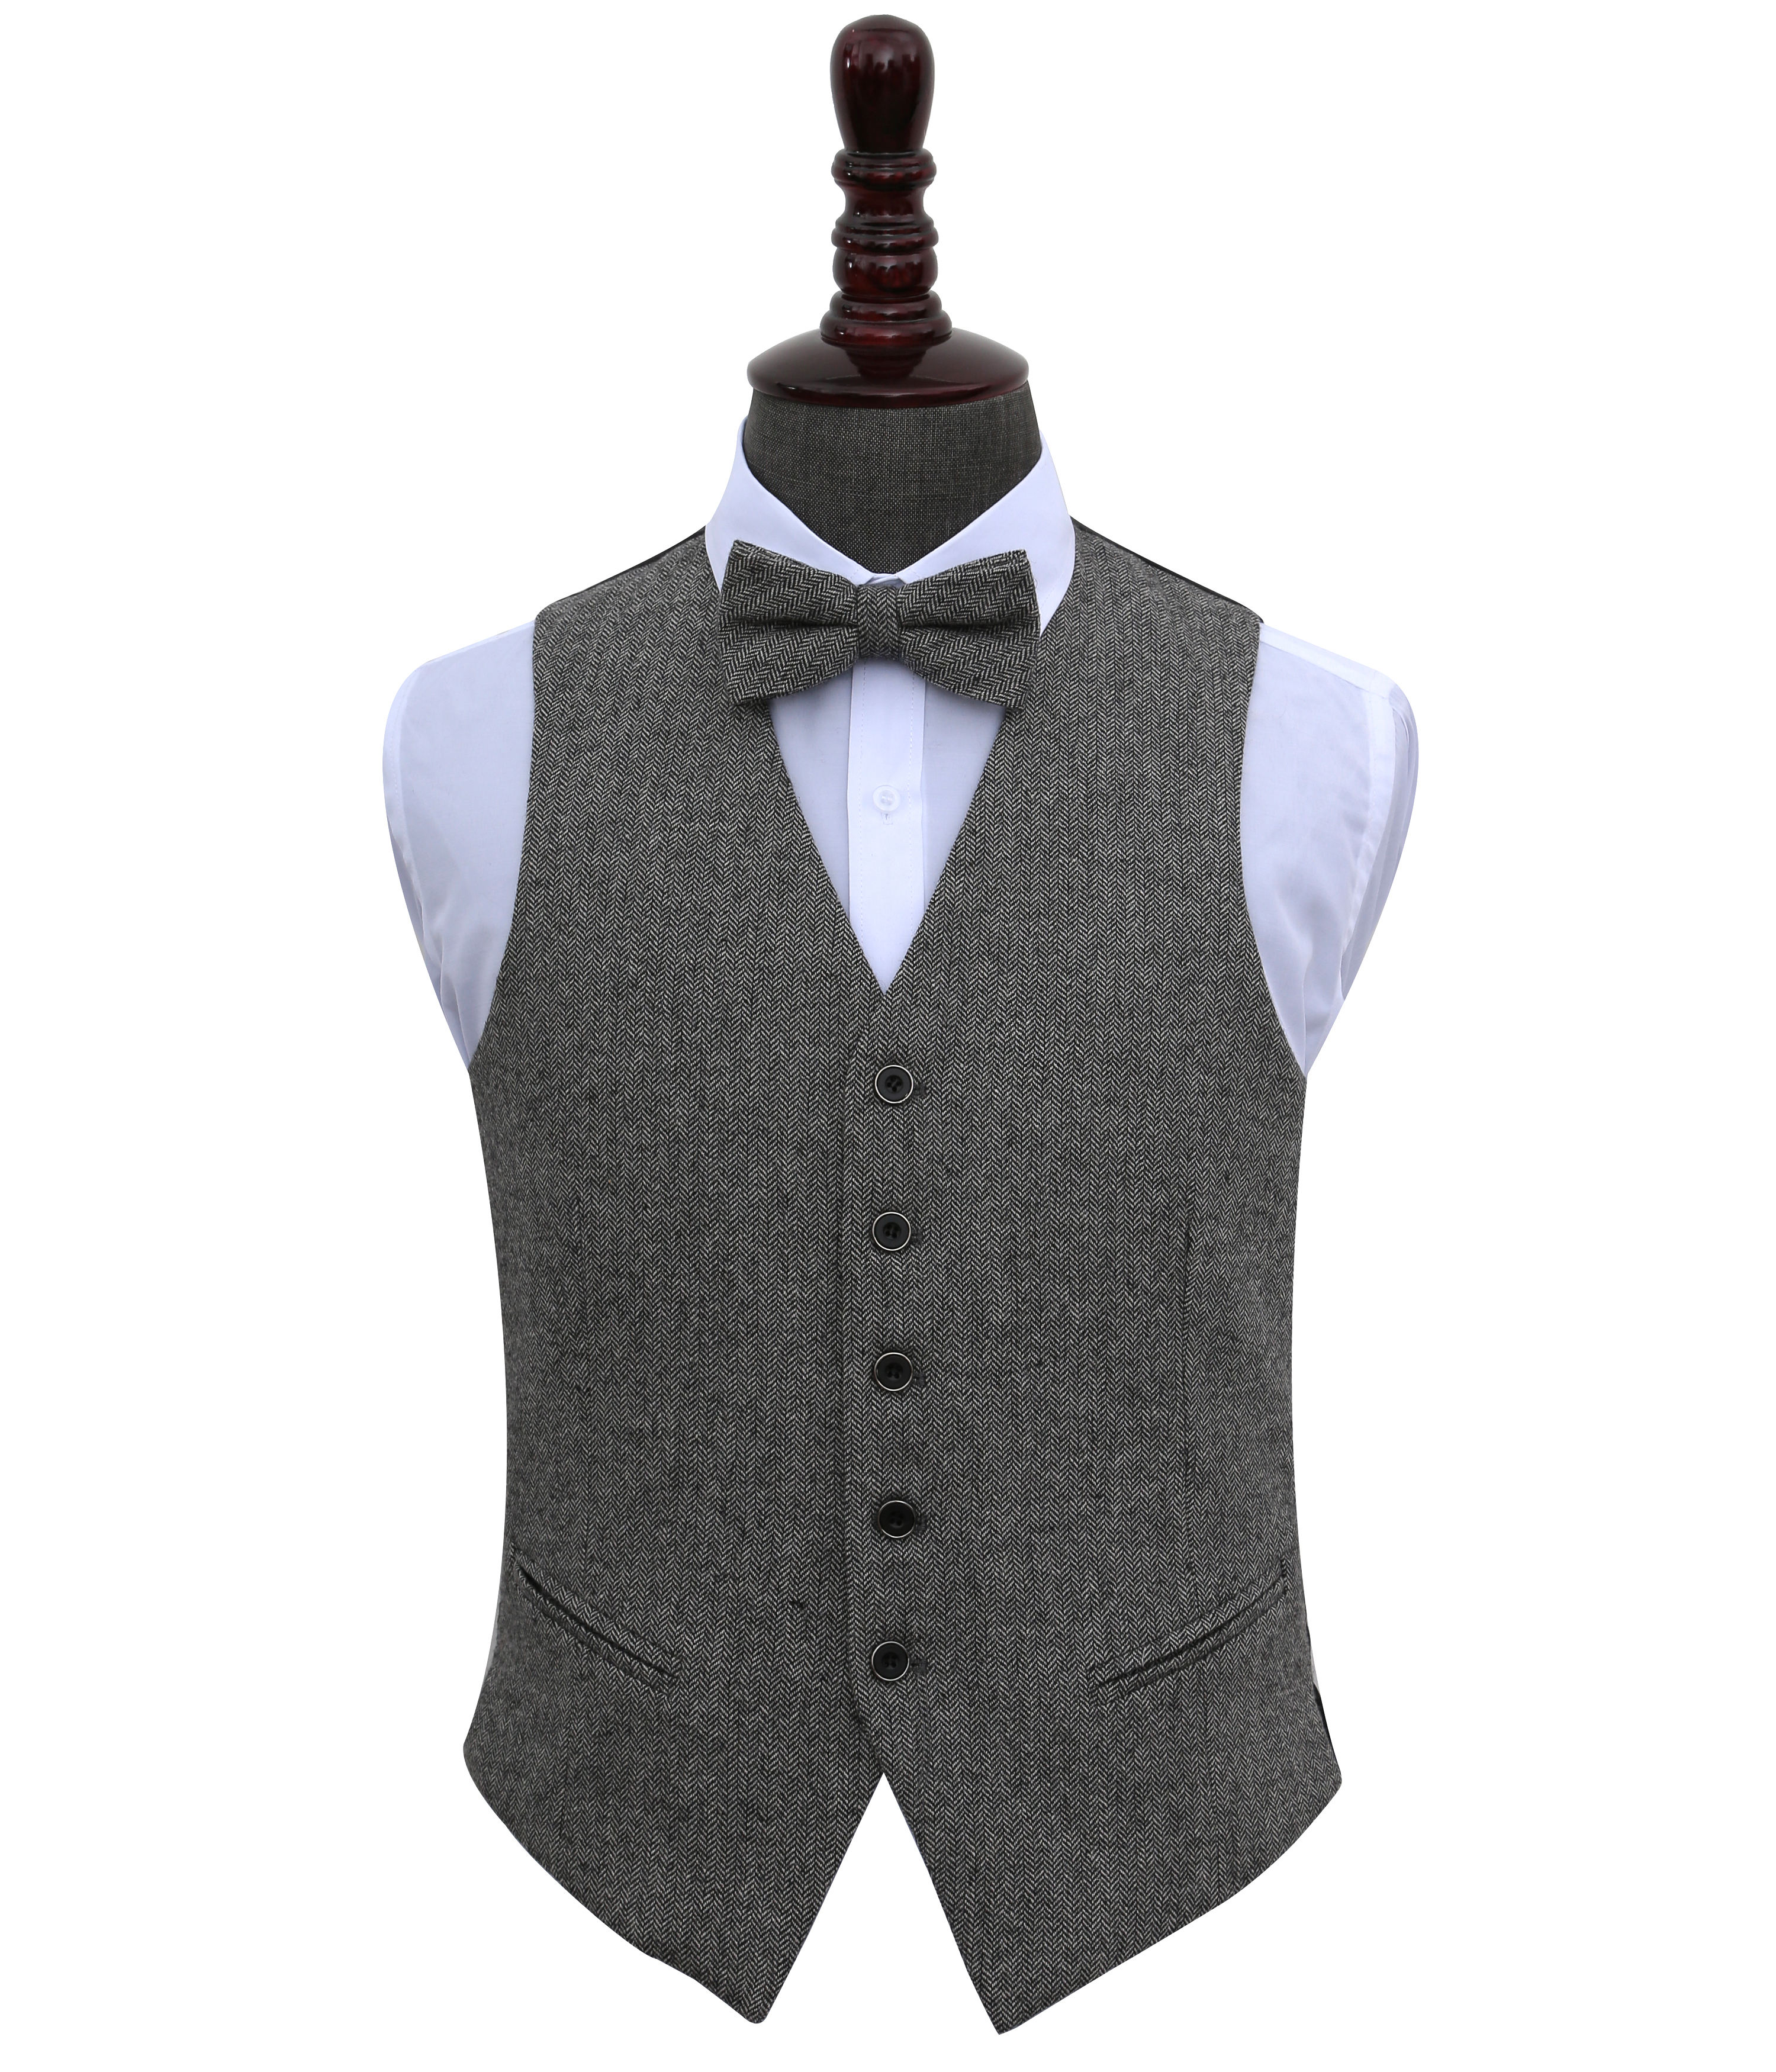 Newest Design Luxury Handsome High Quality Wool Grey Mens Formal waistcoat